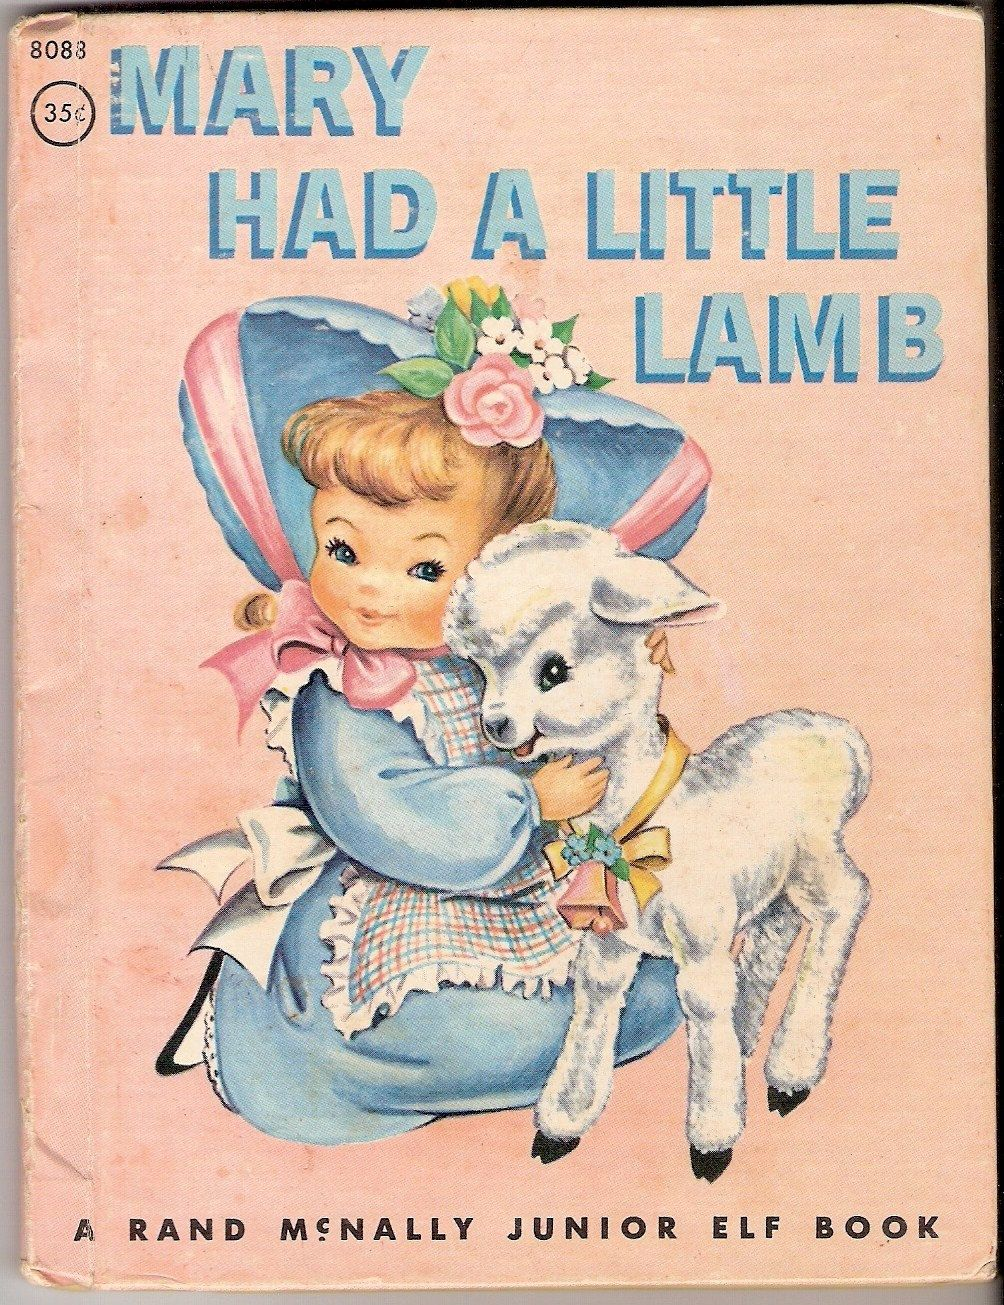 Pin By Eye Candy Creations On Children S Books Darling Illustrations Vintage Books Vintage Children S Books Book Illustration